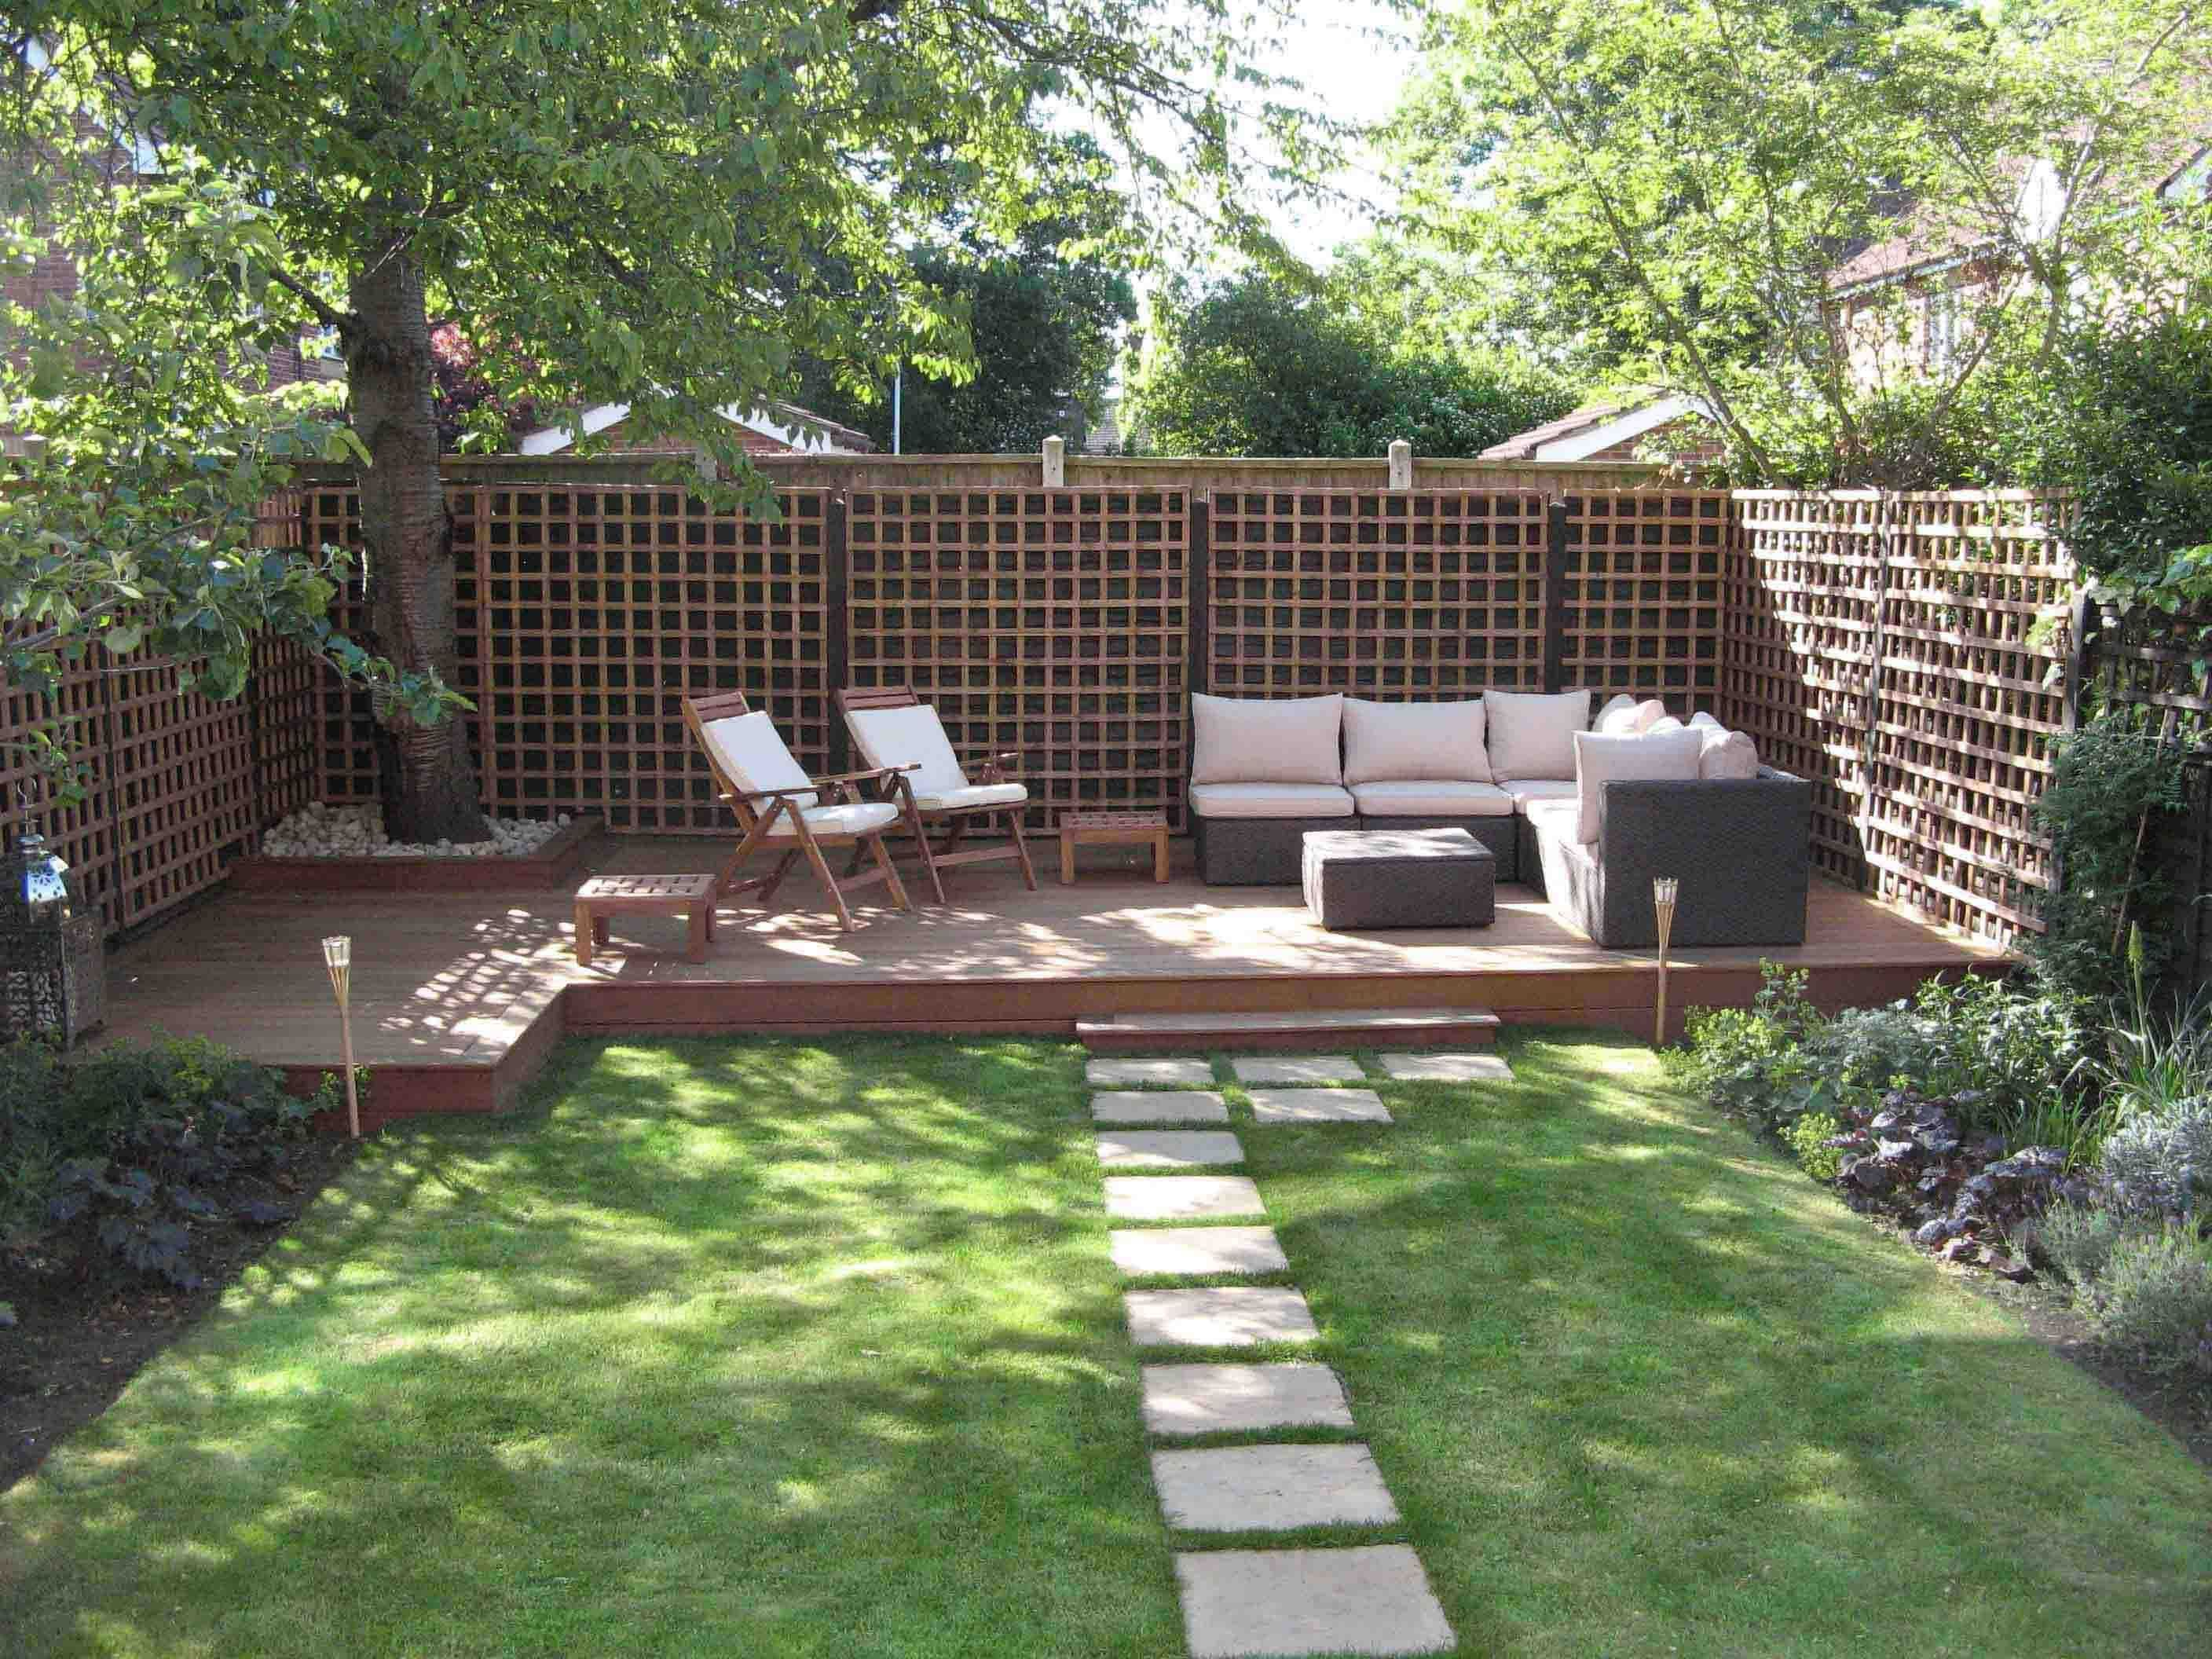 Small Deck Ideas That Are Just Right Backyard Landscaping Designs Small Backyard Gardens Small Backyard Landscaping